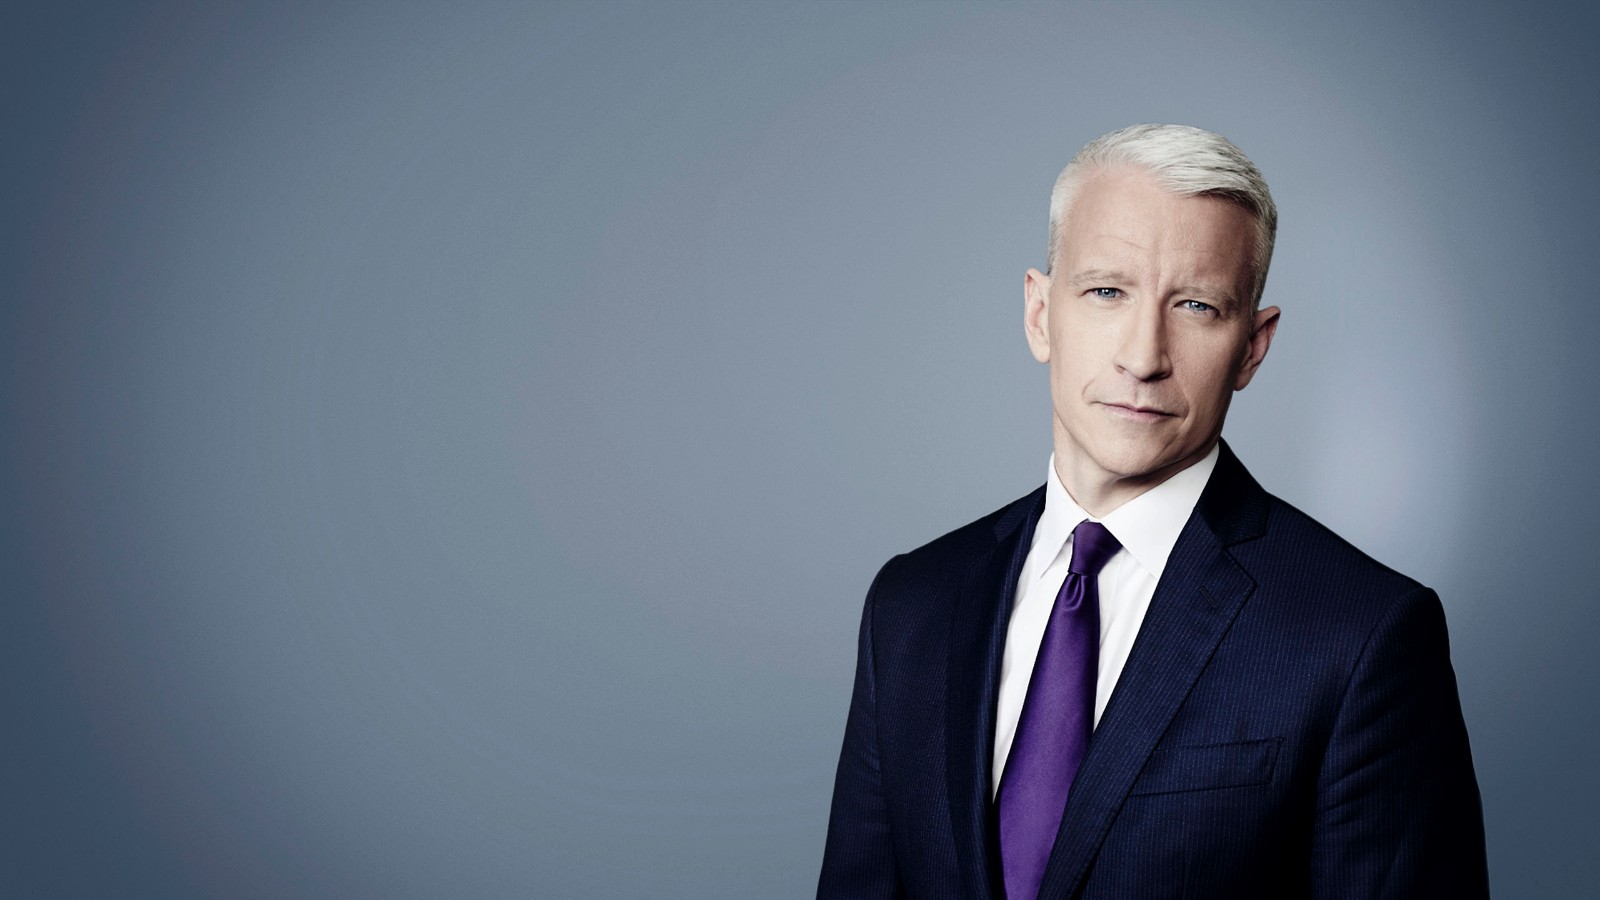 CNN Profiles - Anderson Cooper - CNN anchor - CNN - photo#8